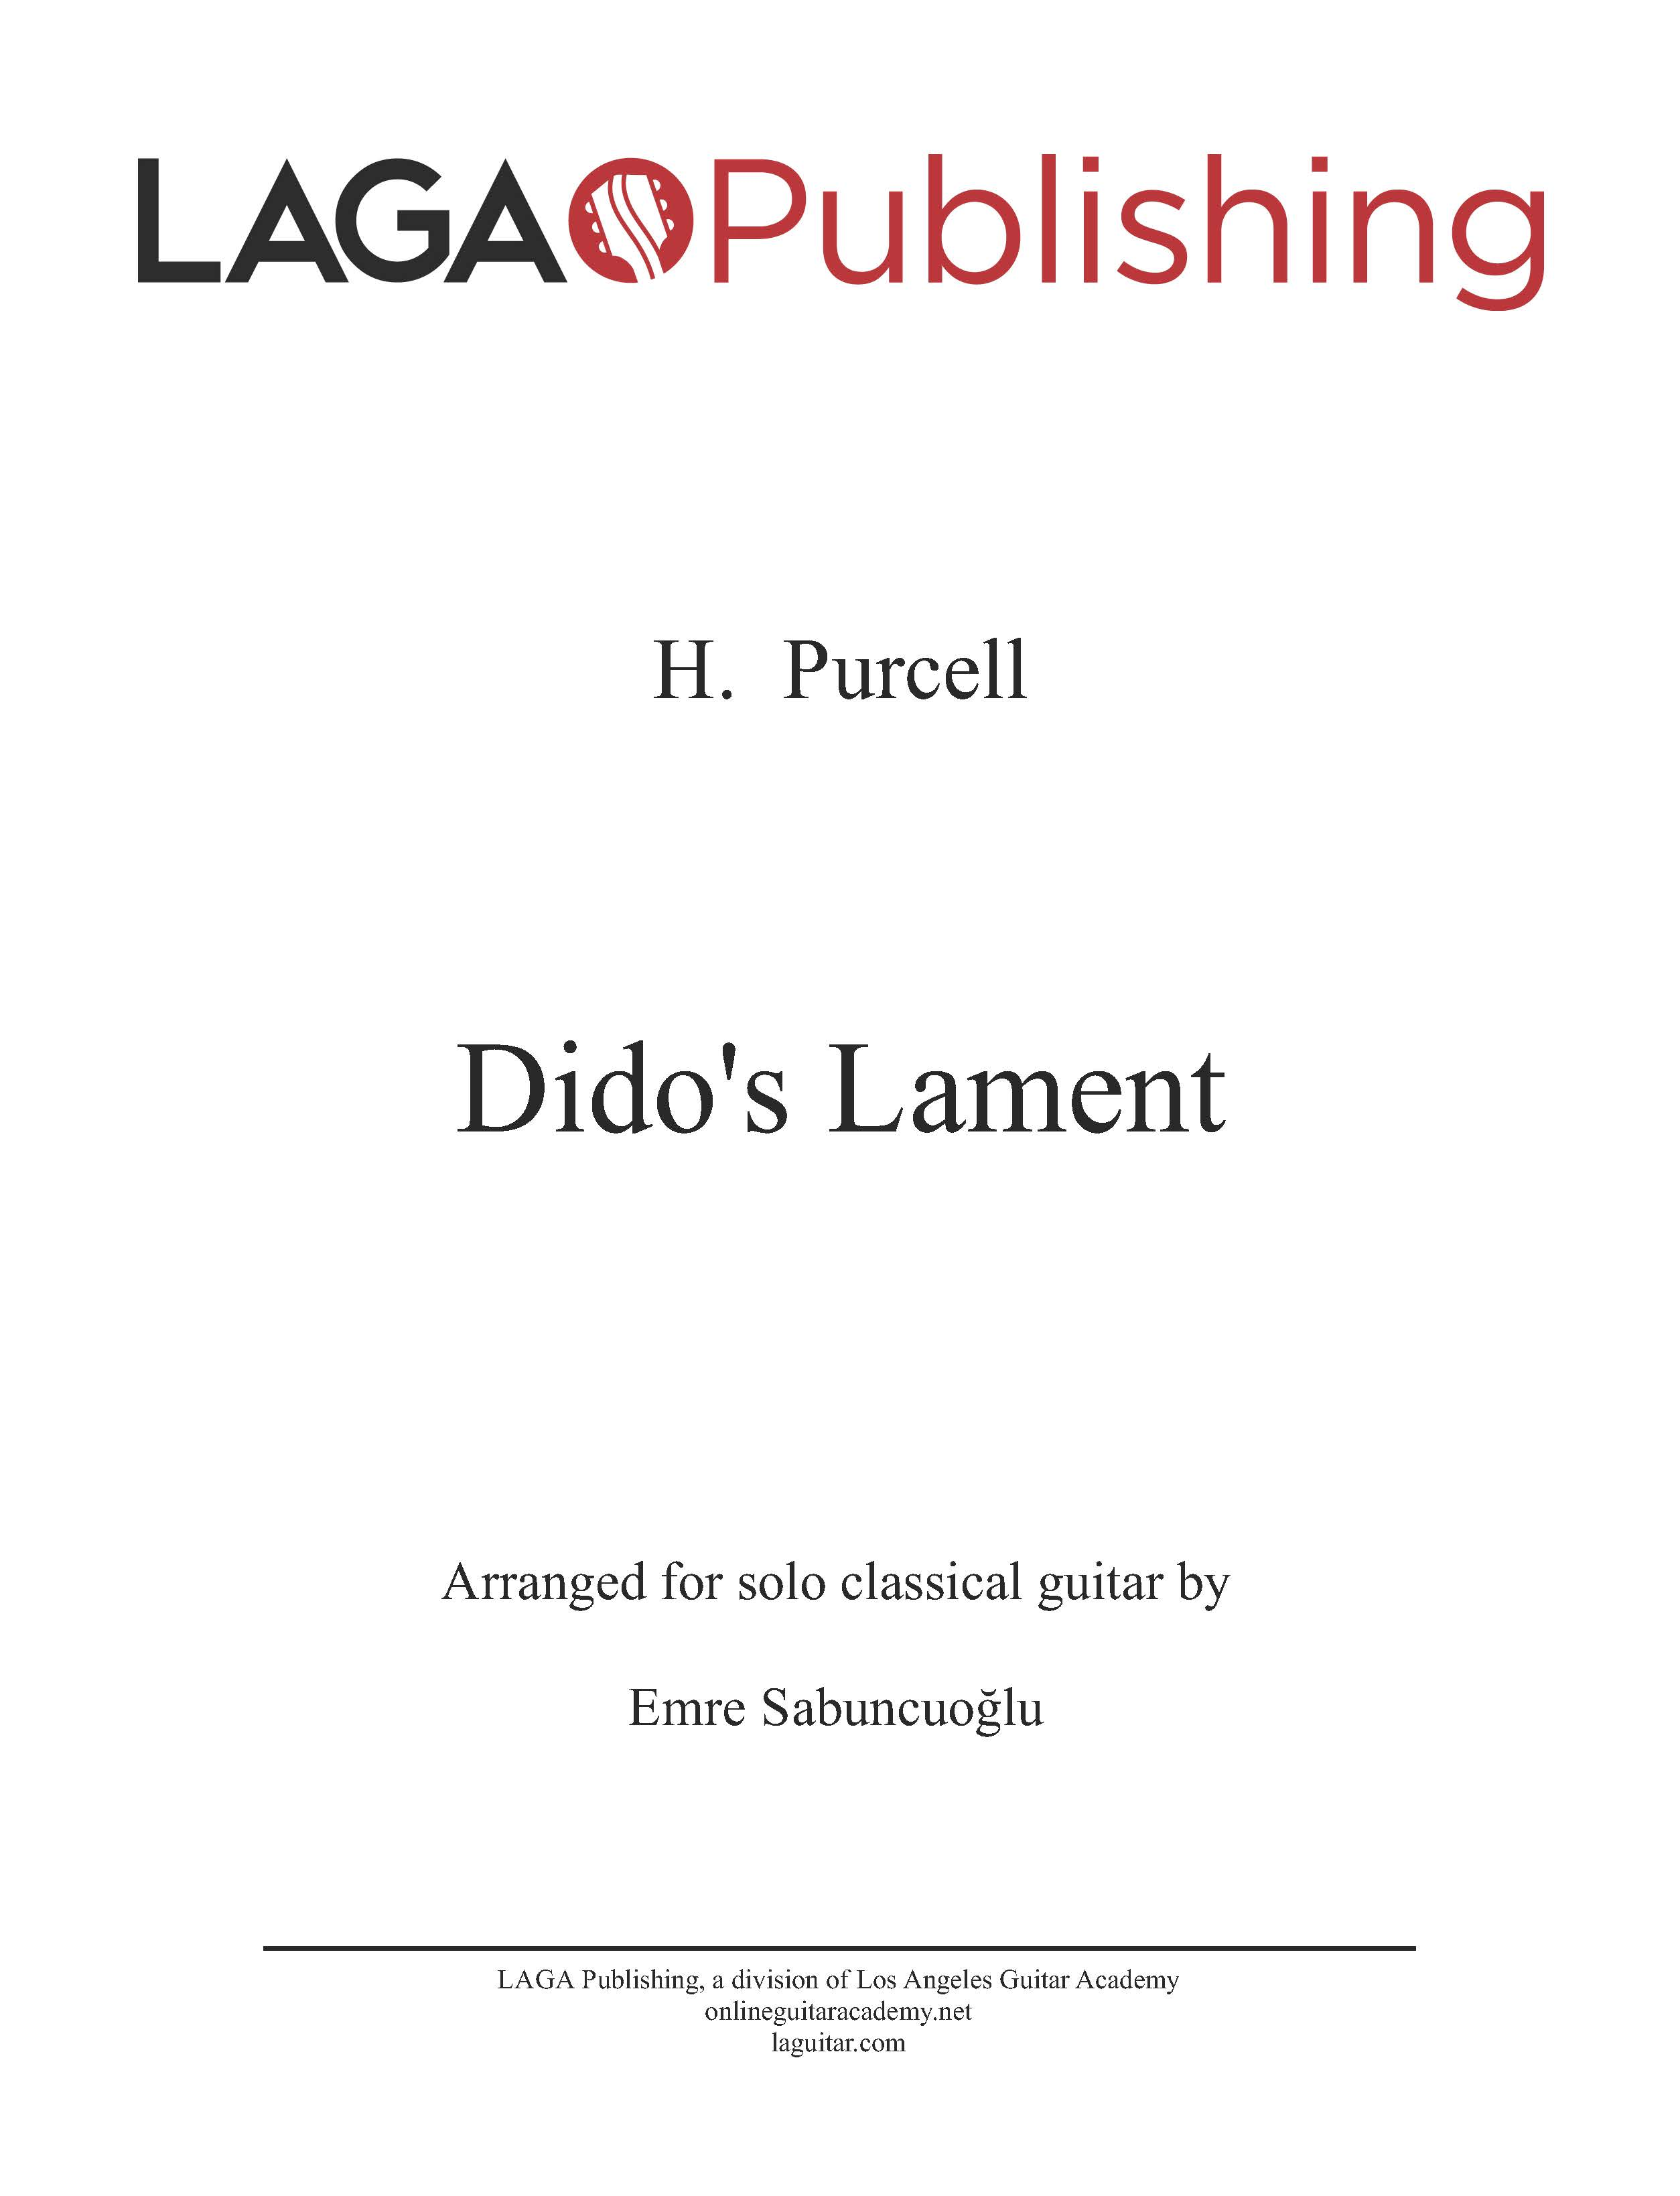 LAGA-Publishing-Purcell-Didos-Lament-Score-and-Tab